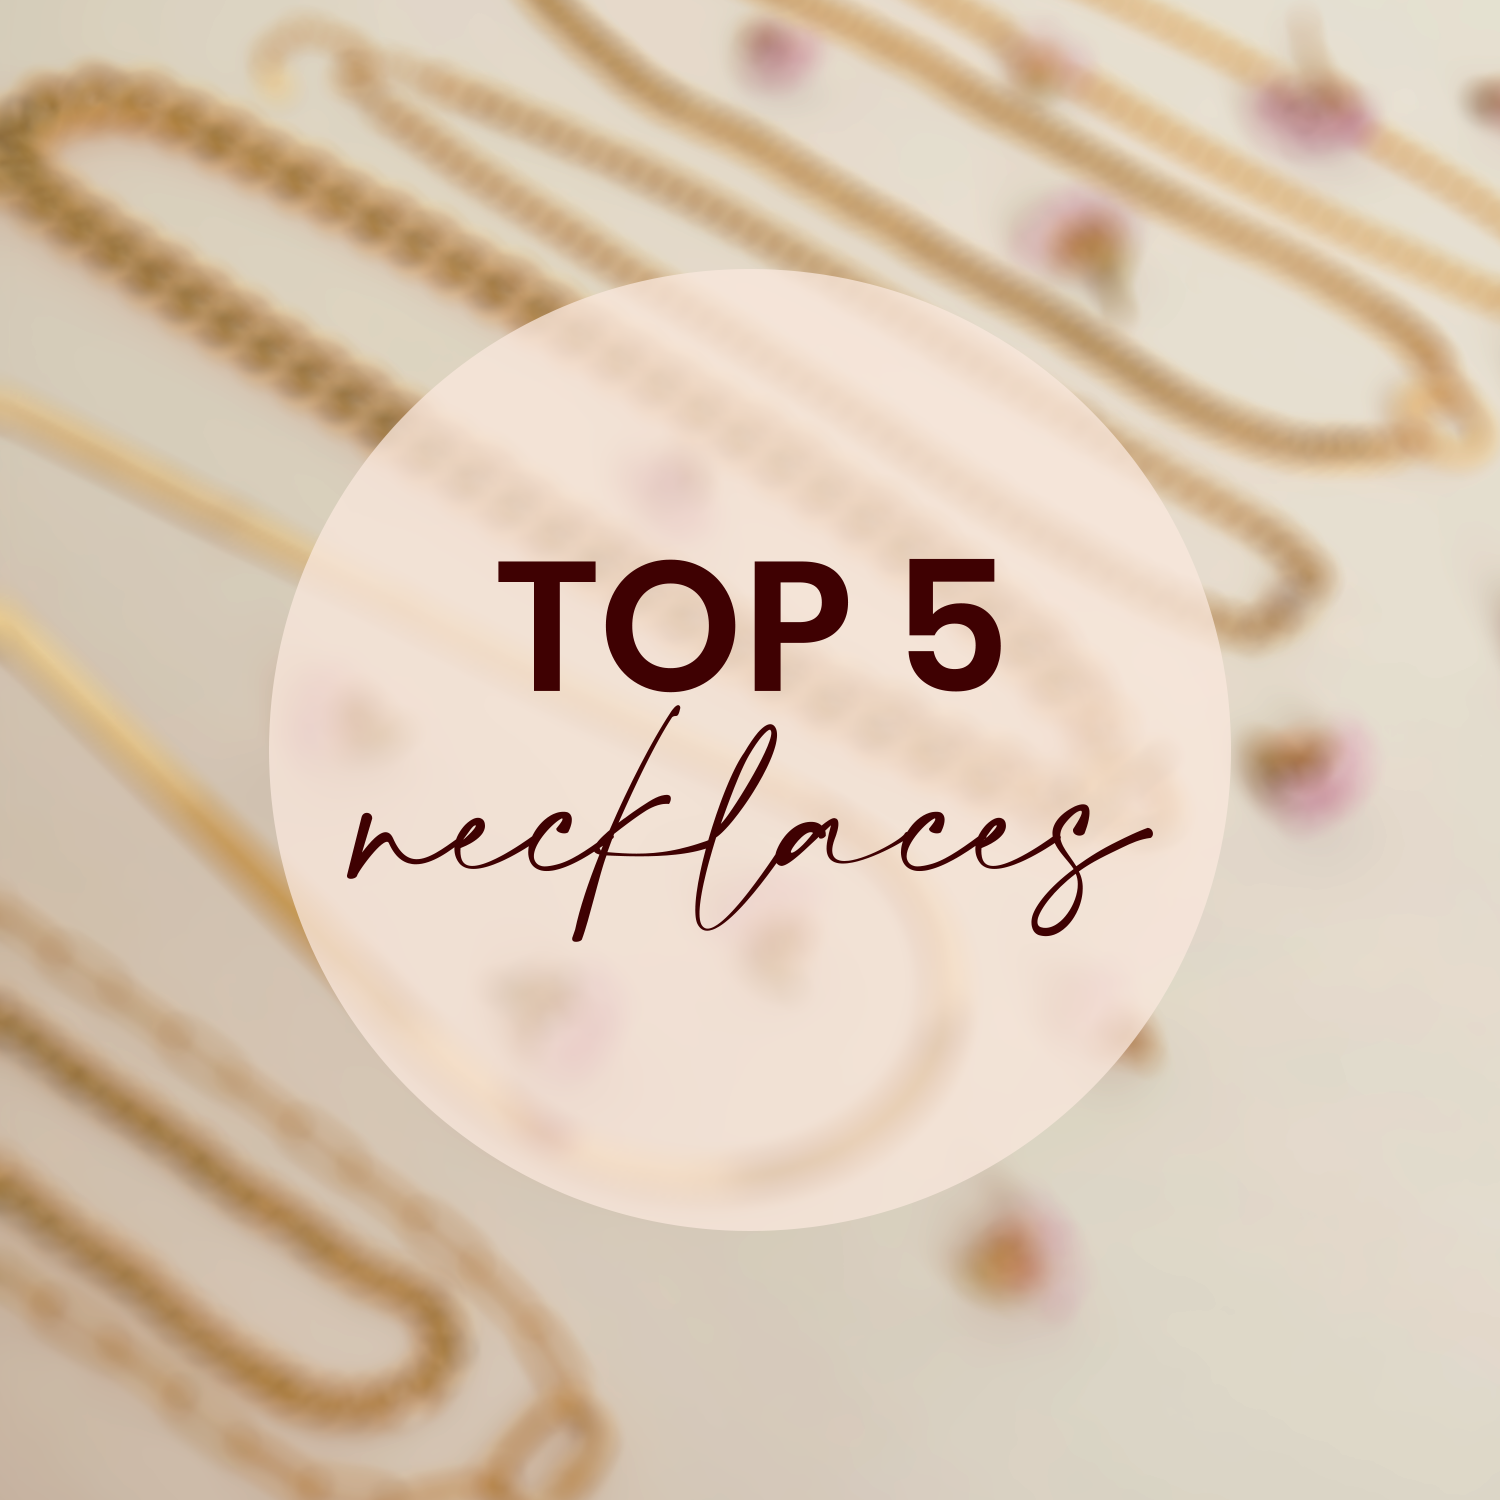 Bestseller top 5 necklaces